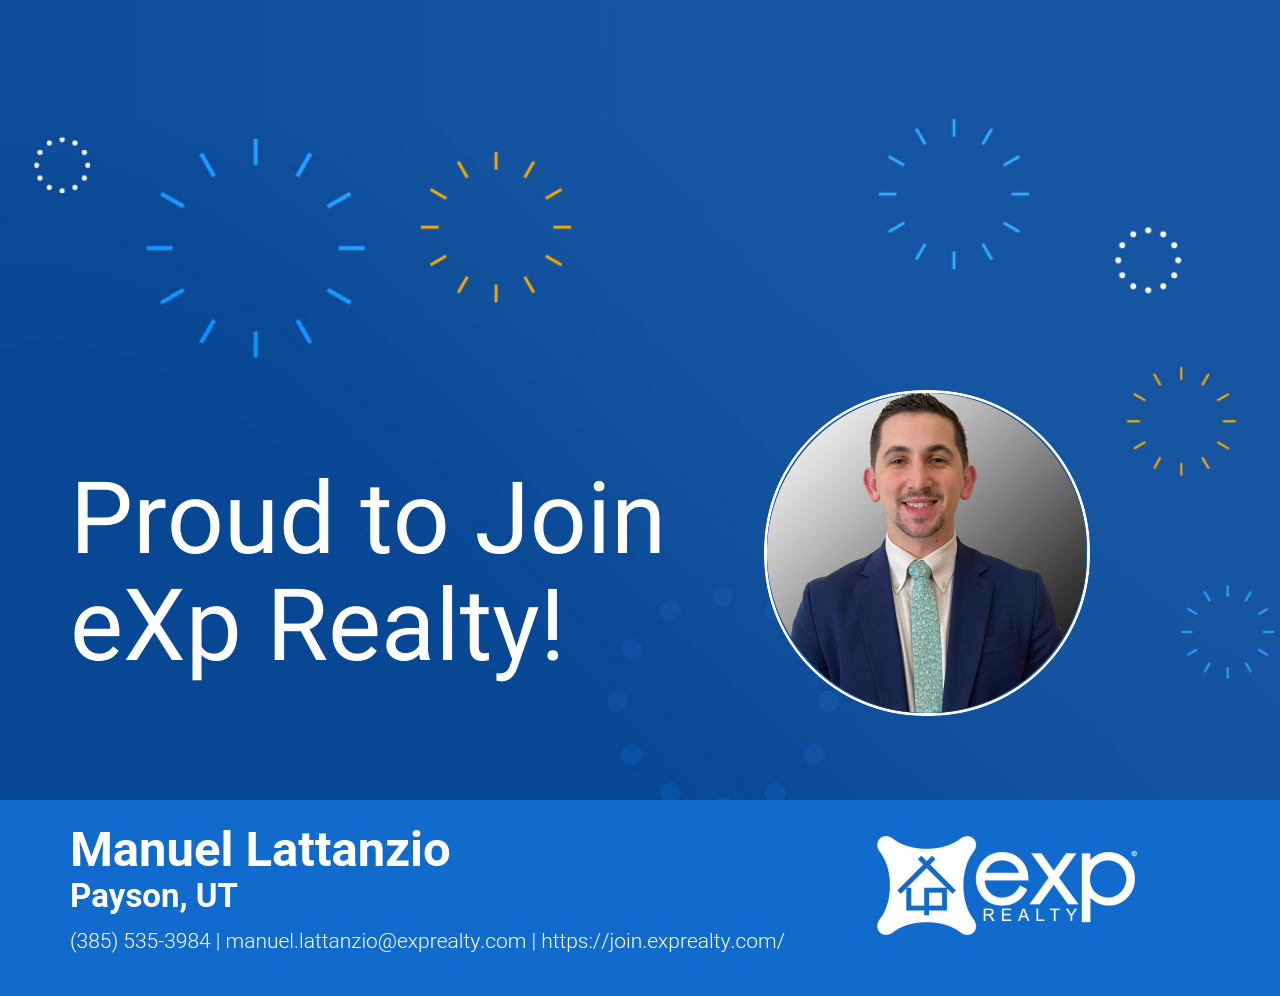 Welcome to eXp Realty Manuel Lattanzio!